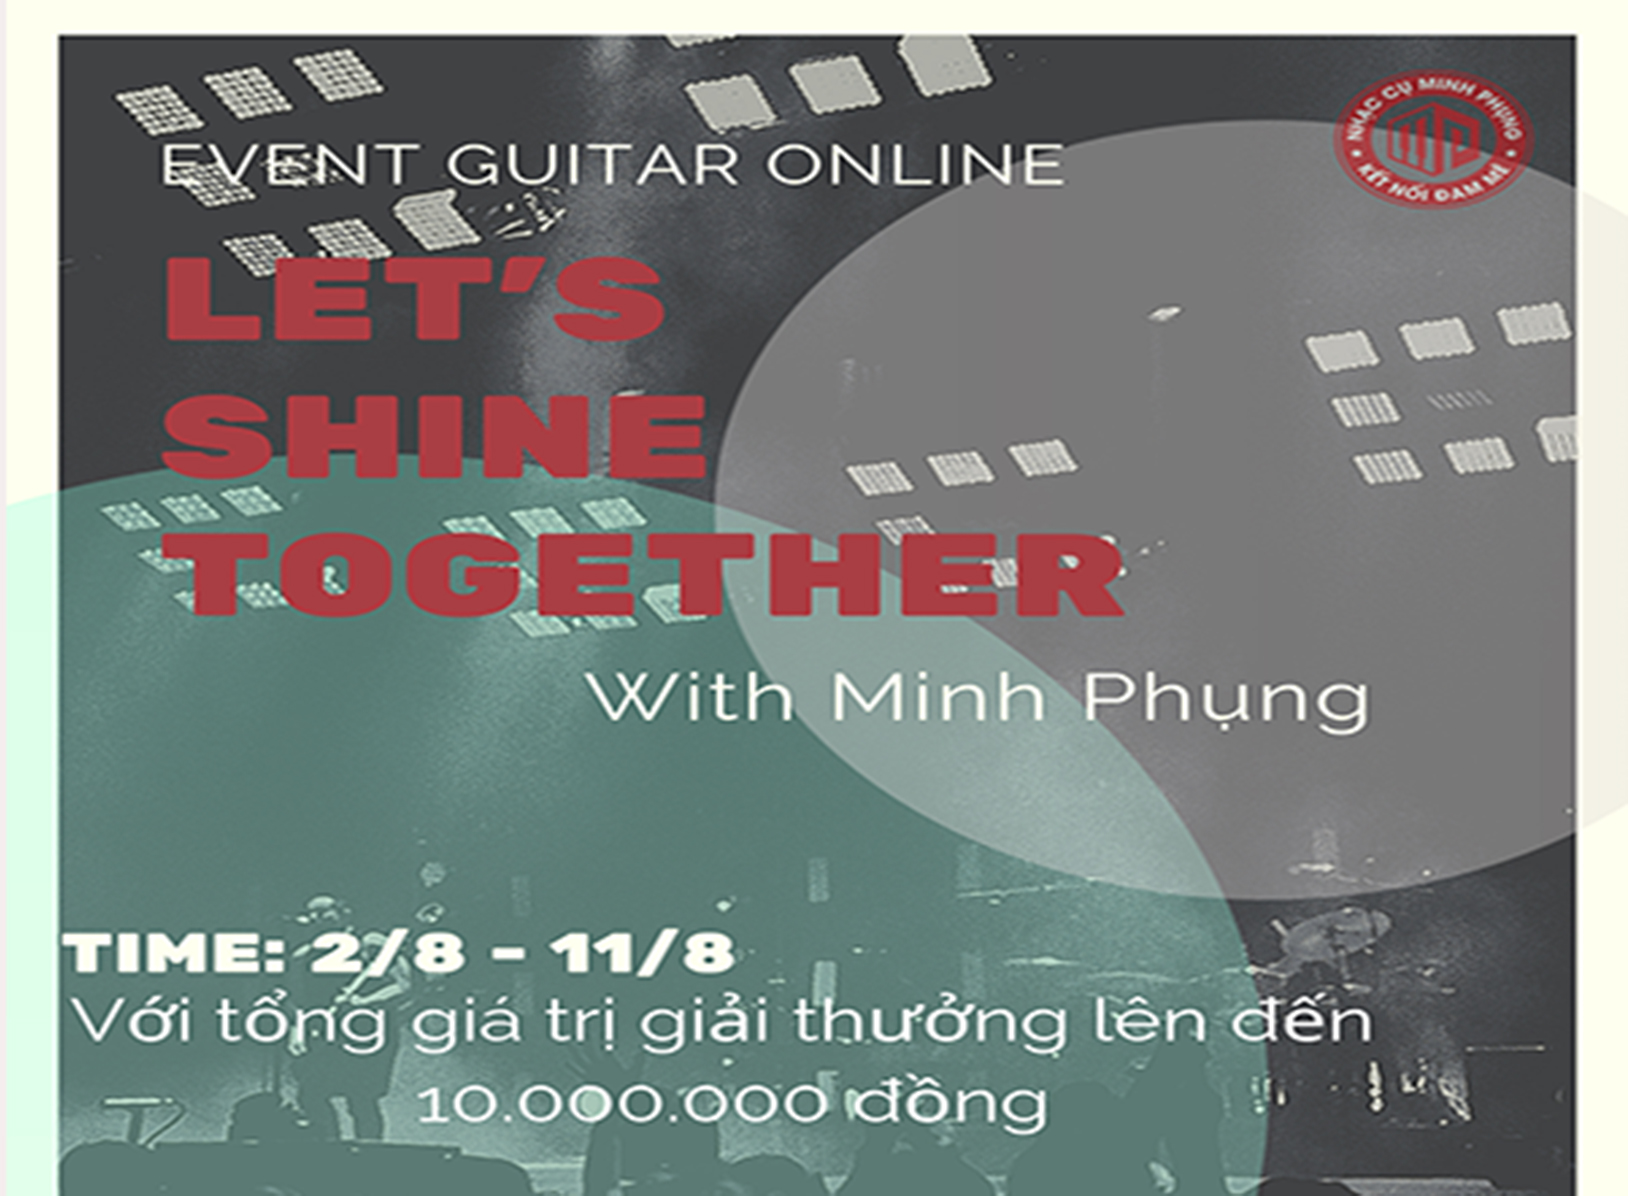 CUỘC THI GUITAR ONLINE LET'S SHINE TOGETHER